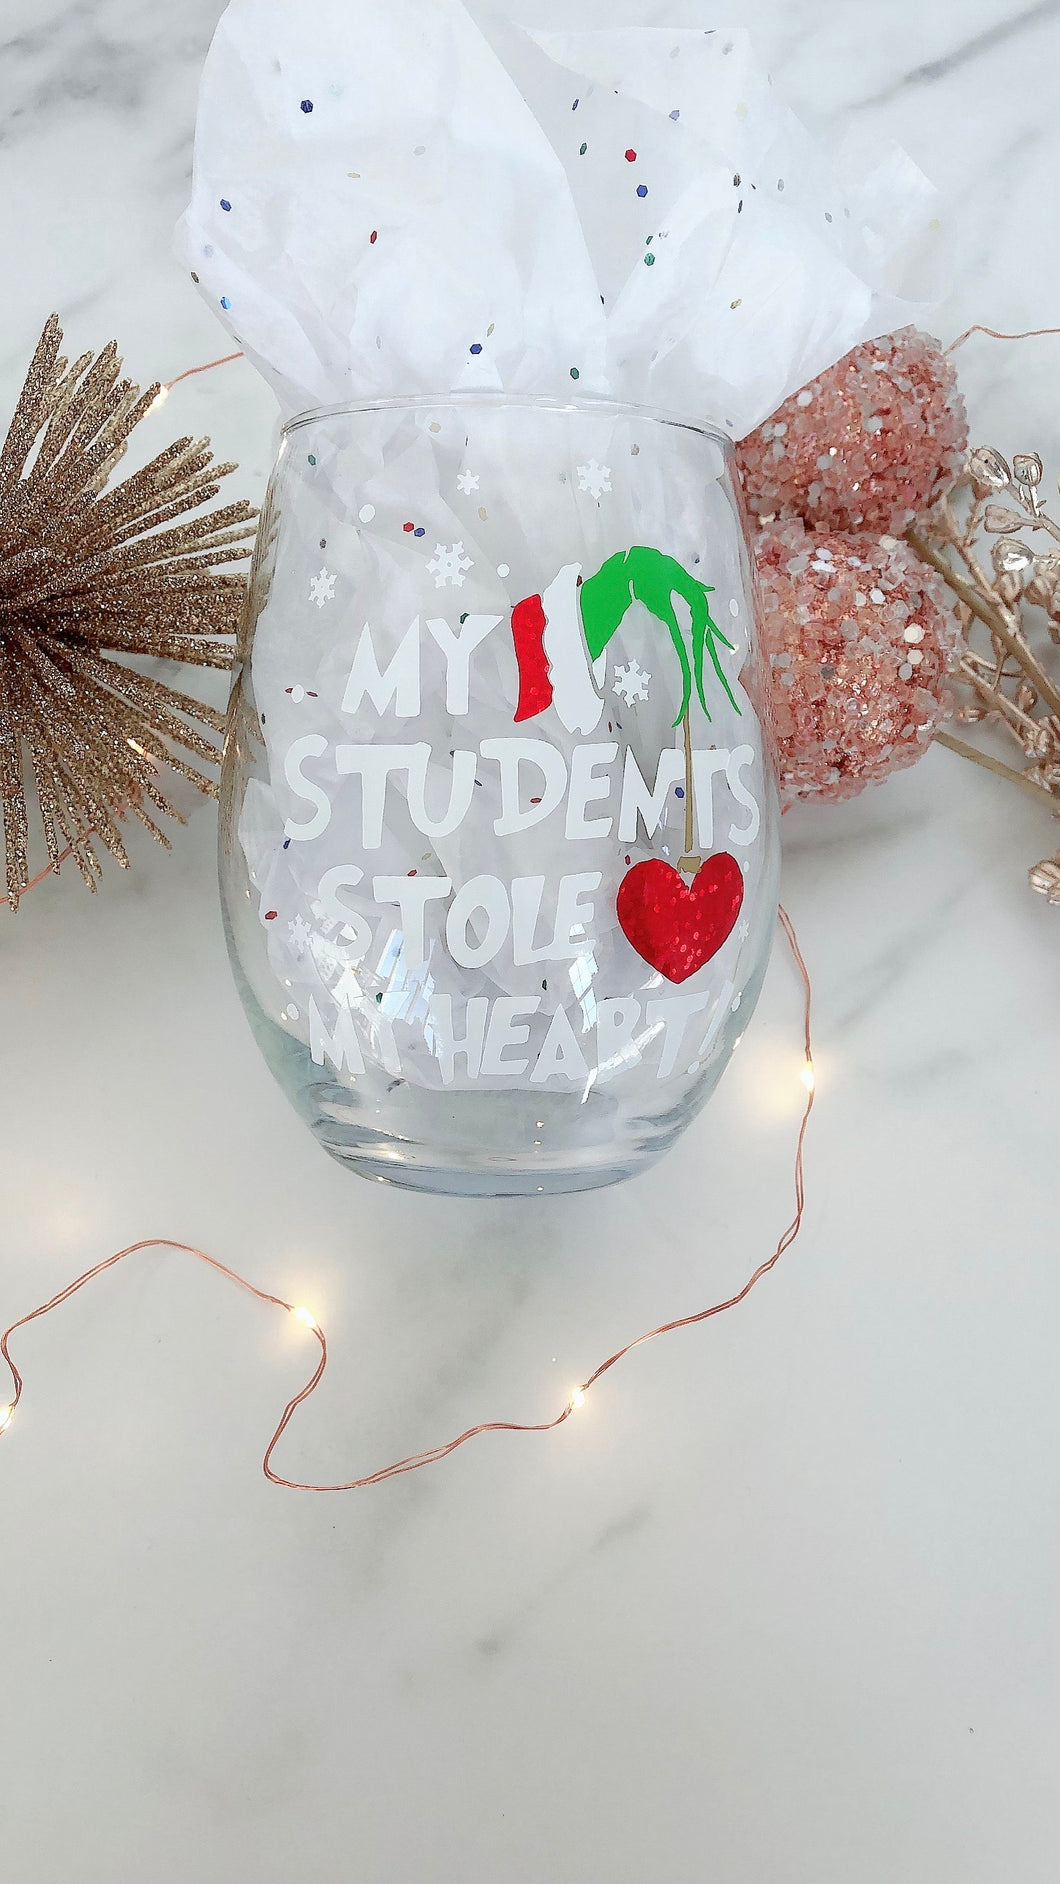 NEW Teacher Personalized Wine Glass ~My Students Stole My Heart Grinch Inspired Gift~Personalized Name Gift